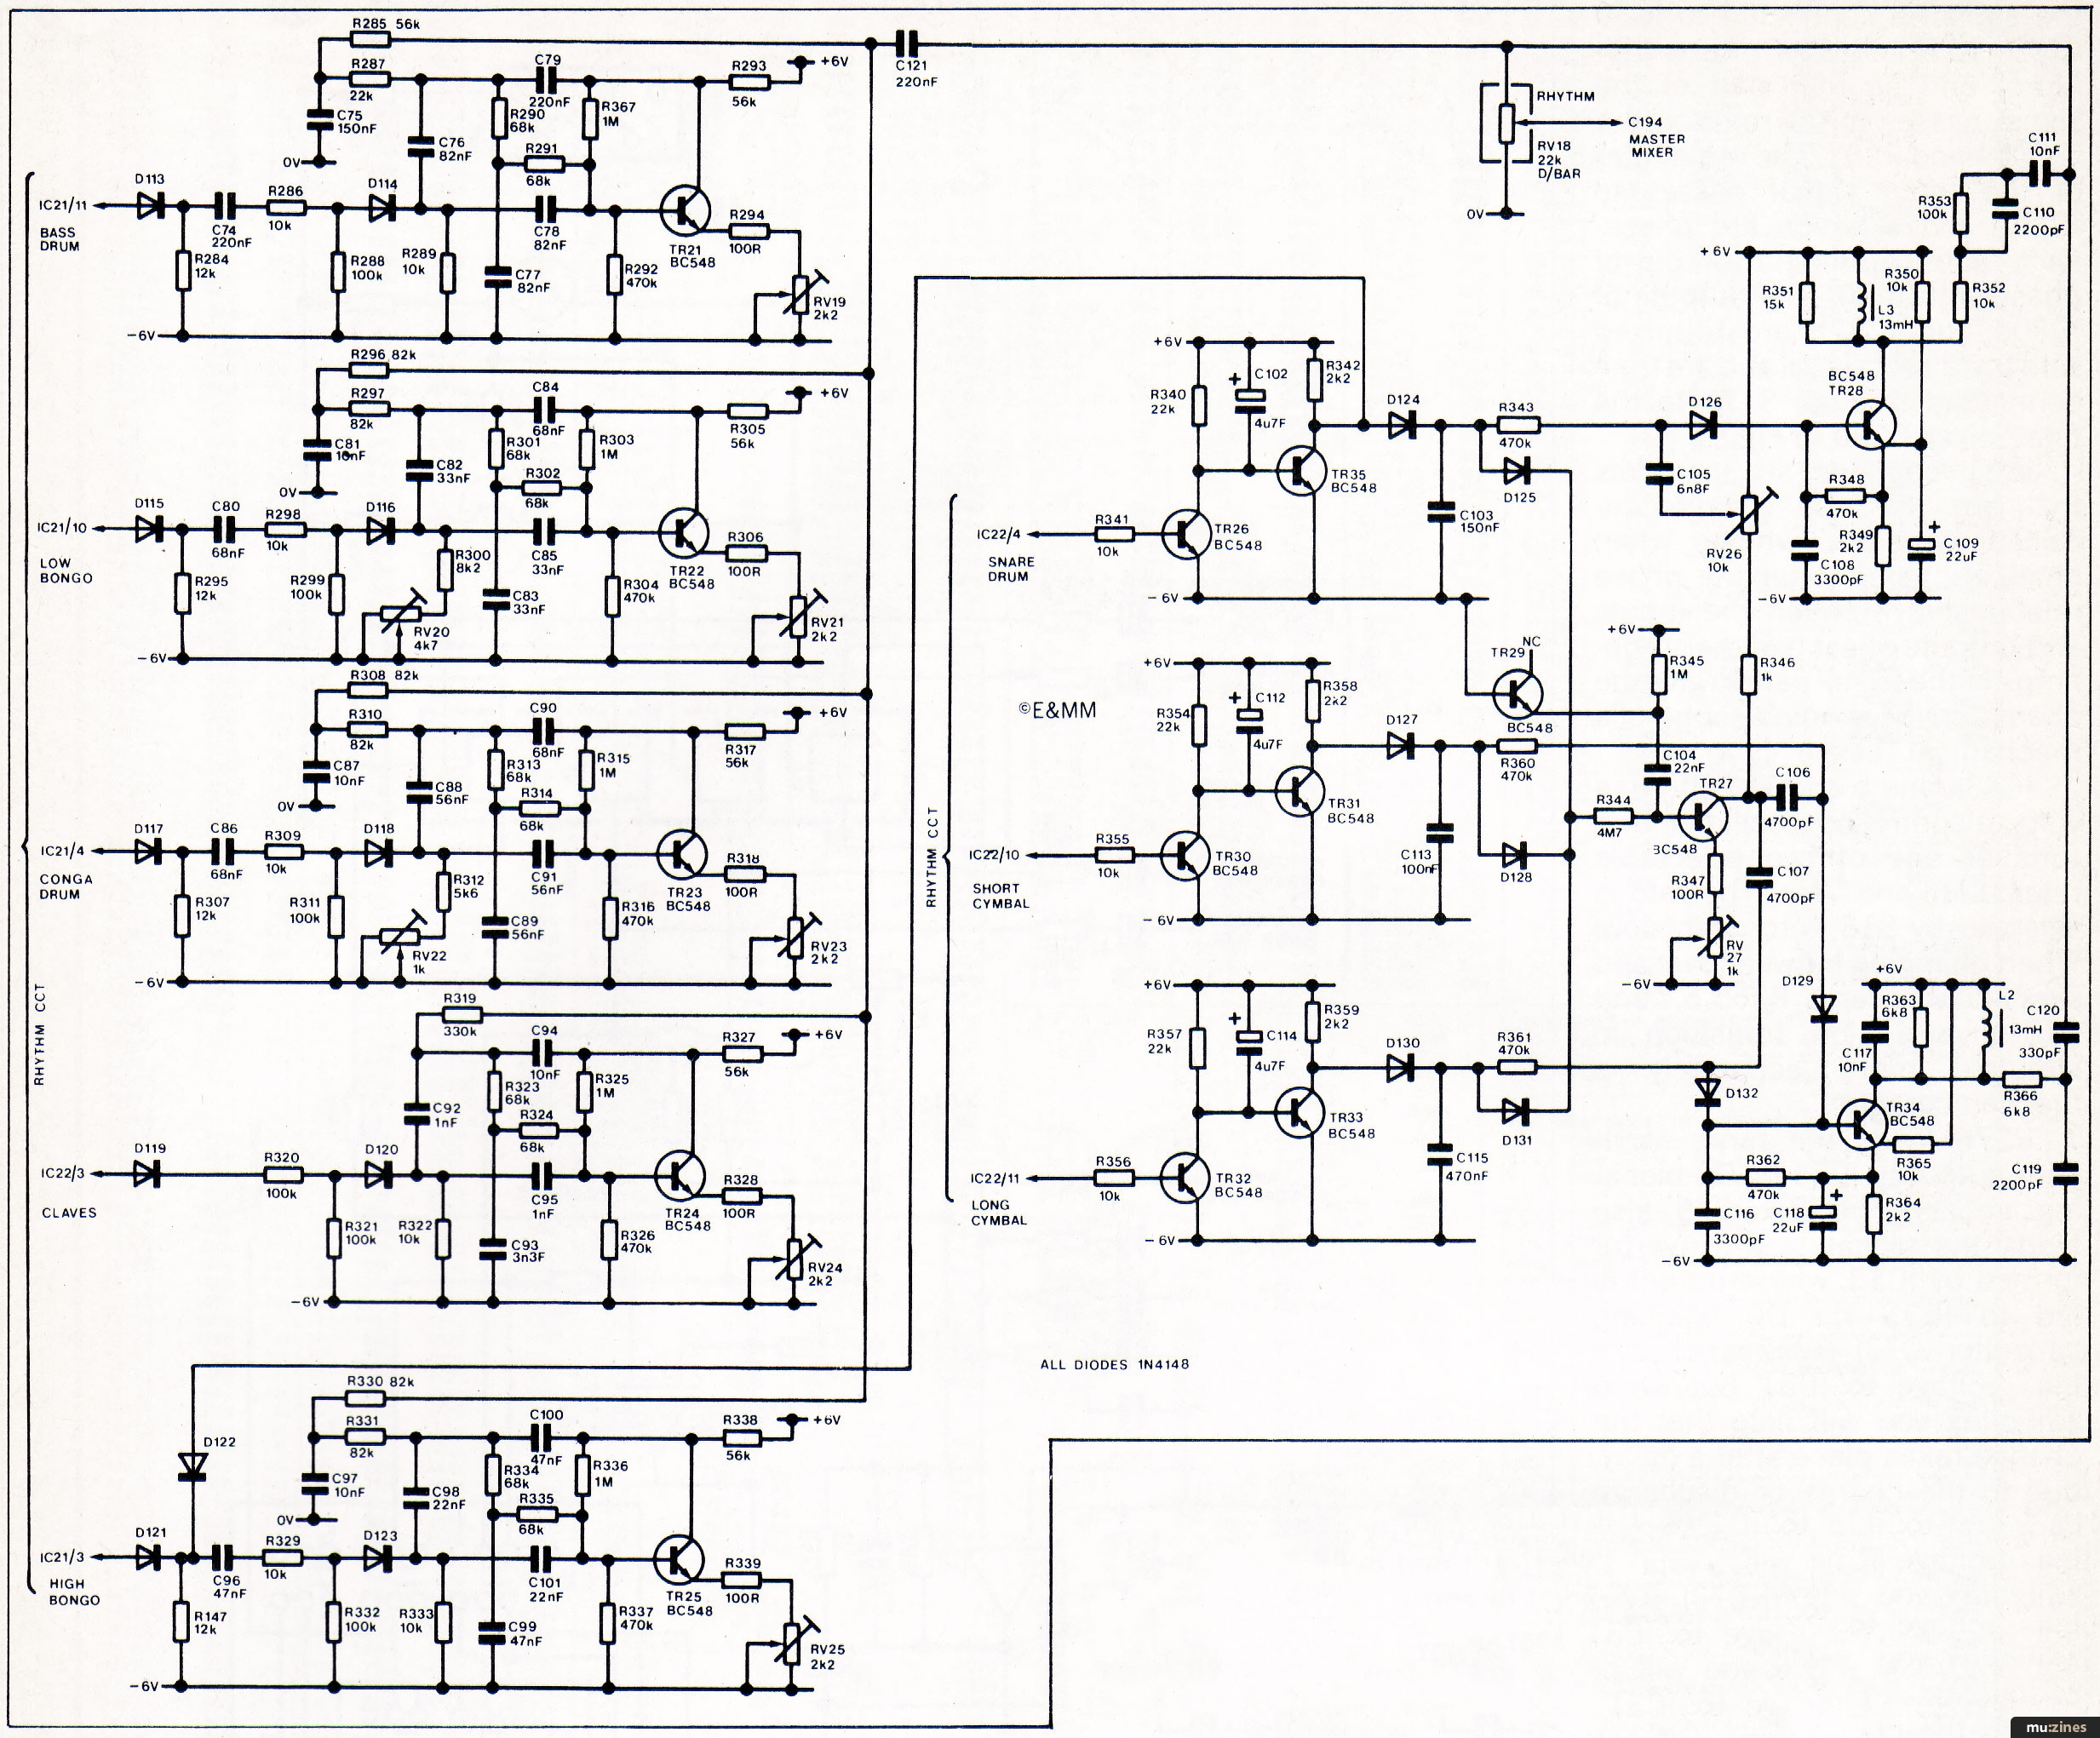 circuit diagram click image for higher resolution